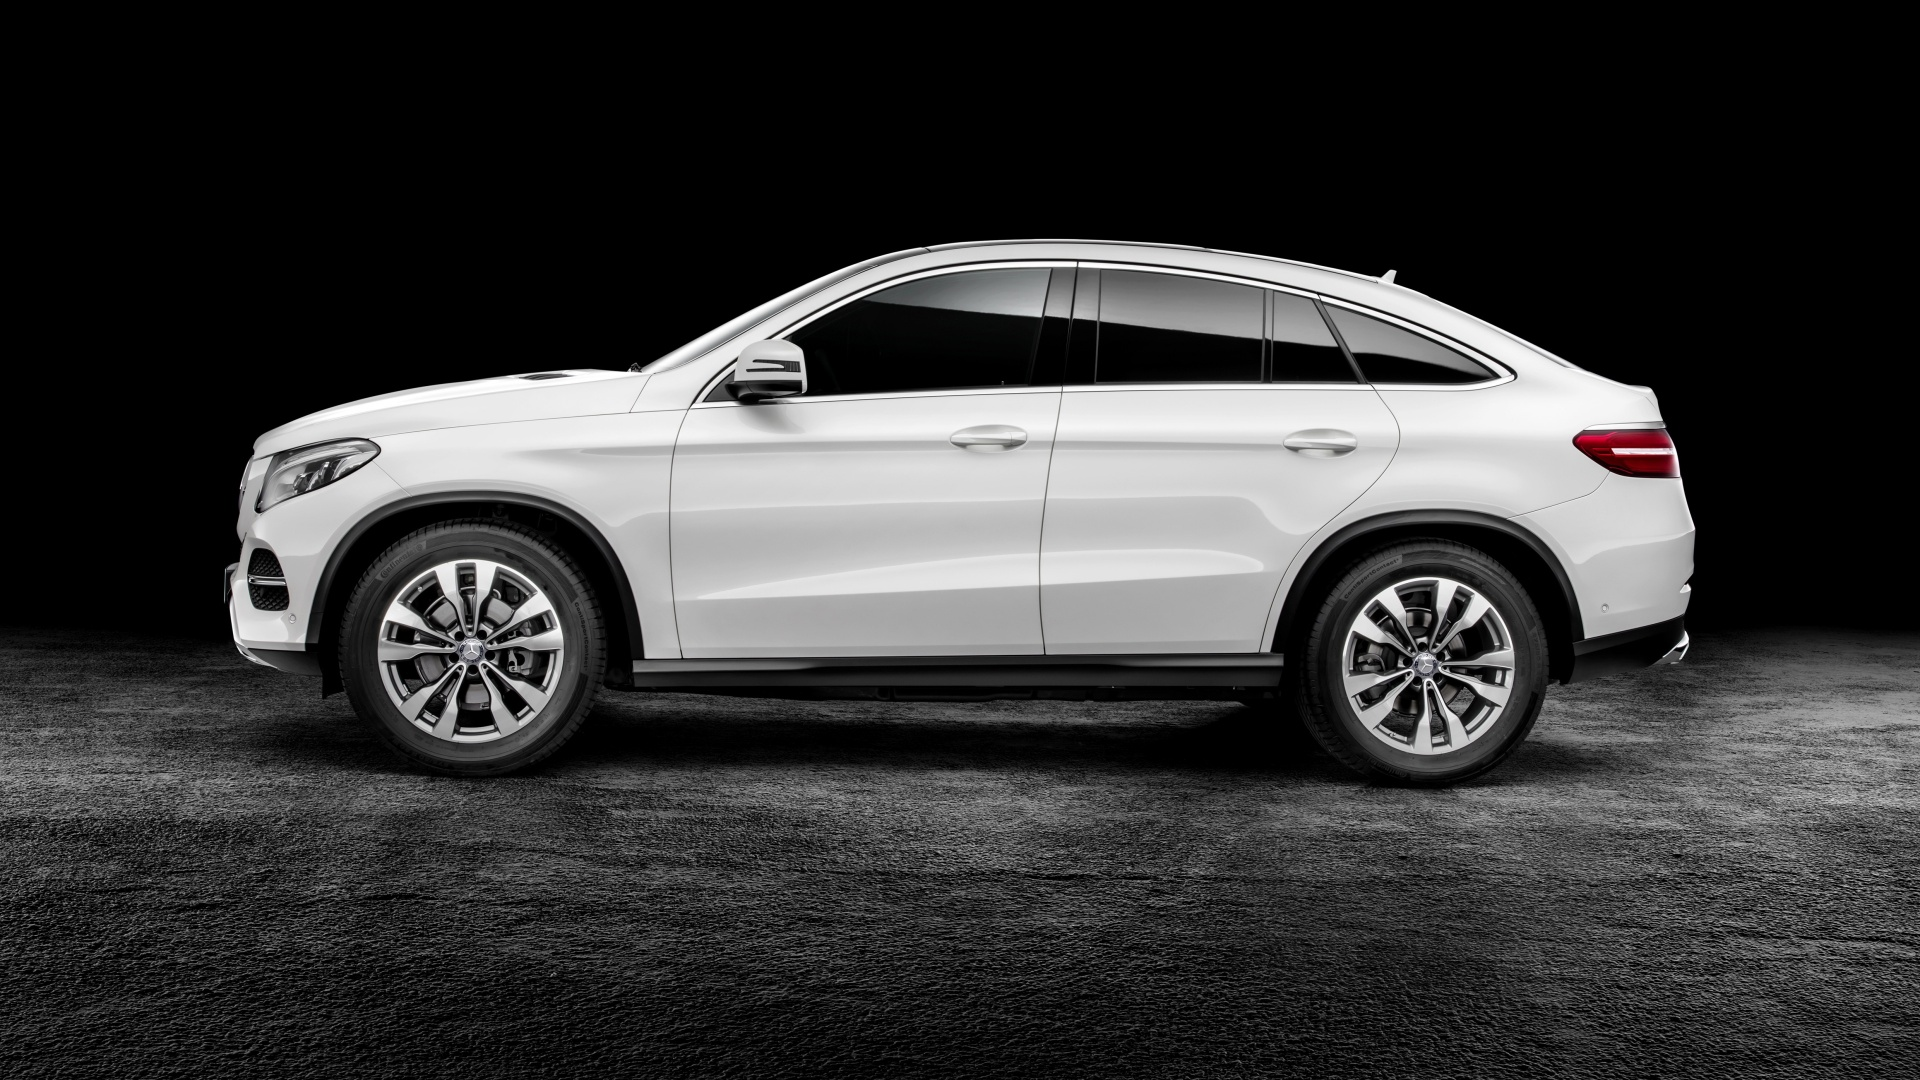 Mercedes benz gle coupe 2015 wallpapers 1920x1080 614453 for 1920 mercedes benz